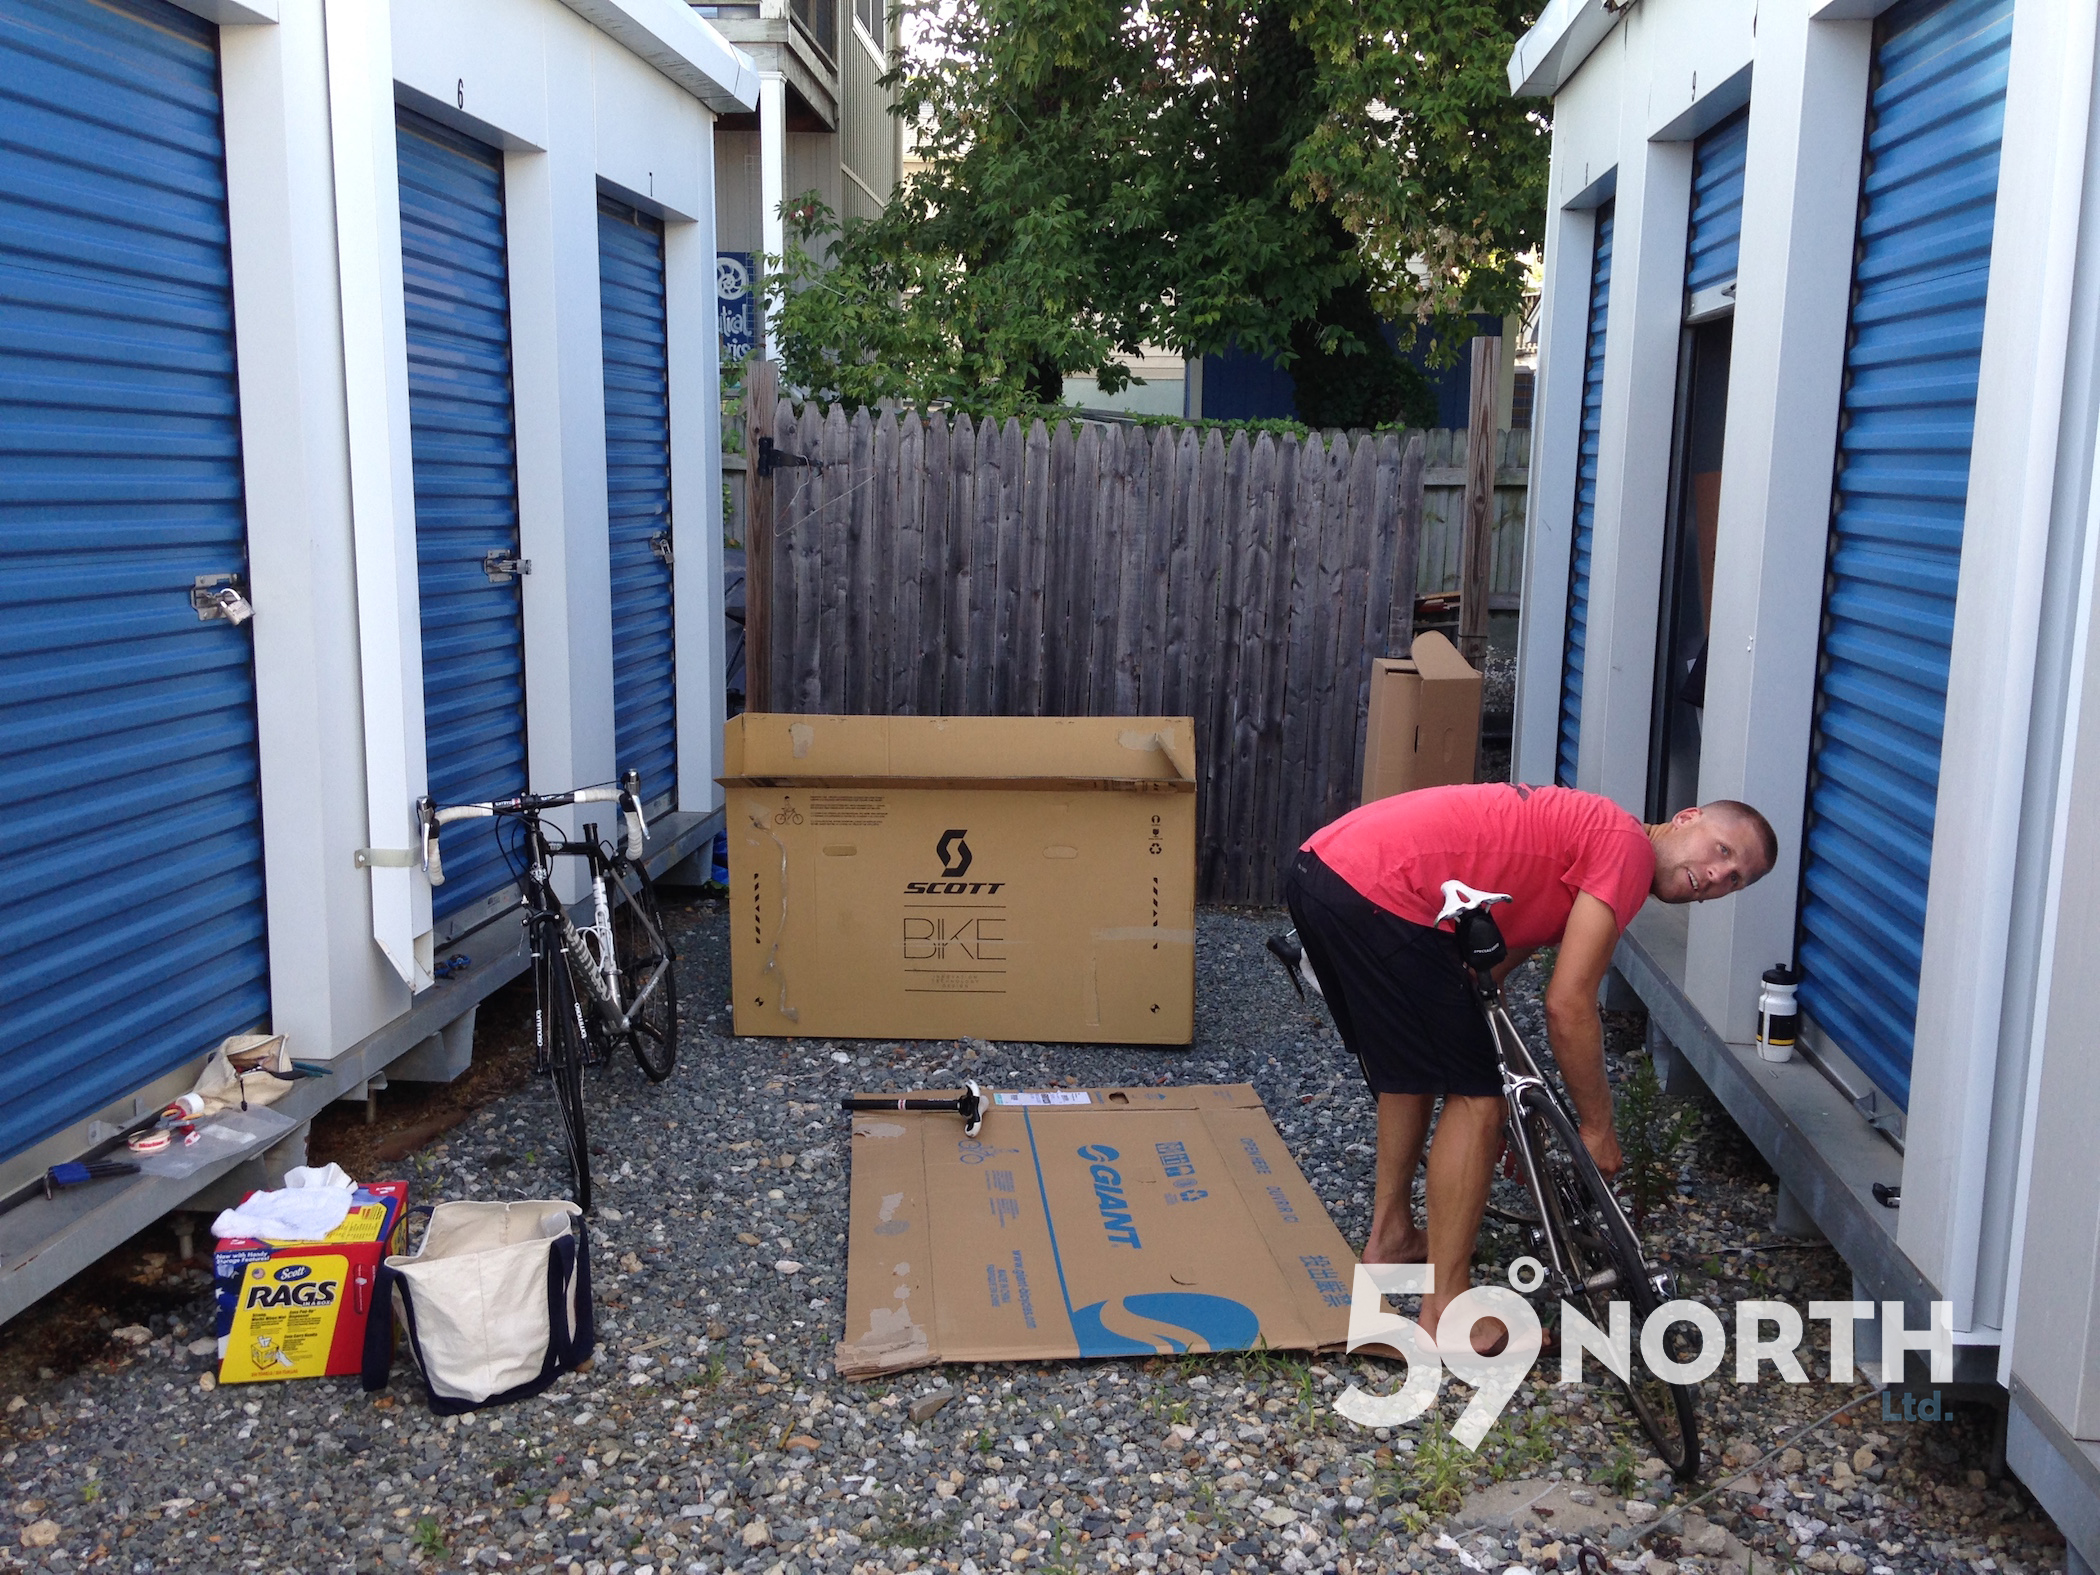 In the process of moving our stuff to Sweden. Here packing up our road bikes to fly back with us. July 2016